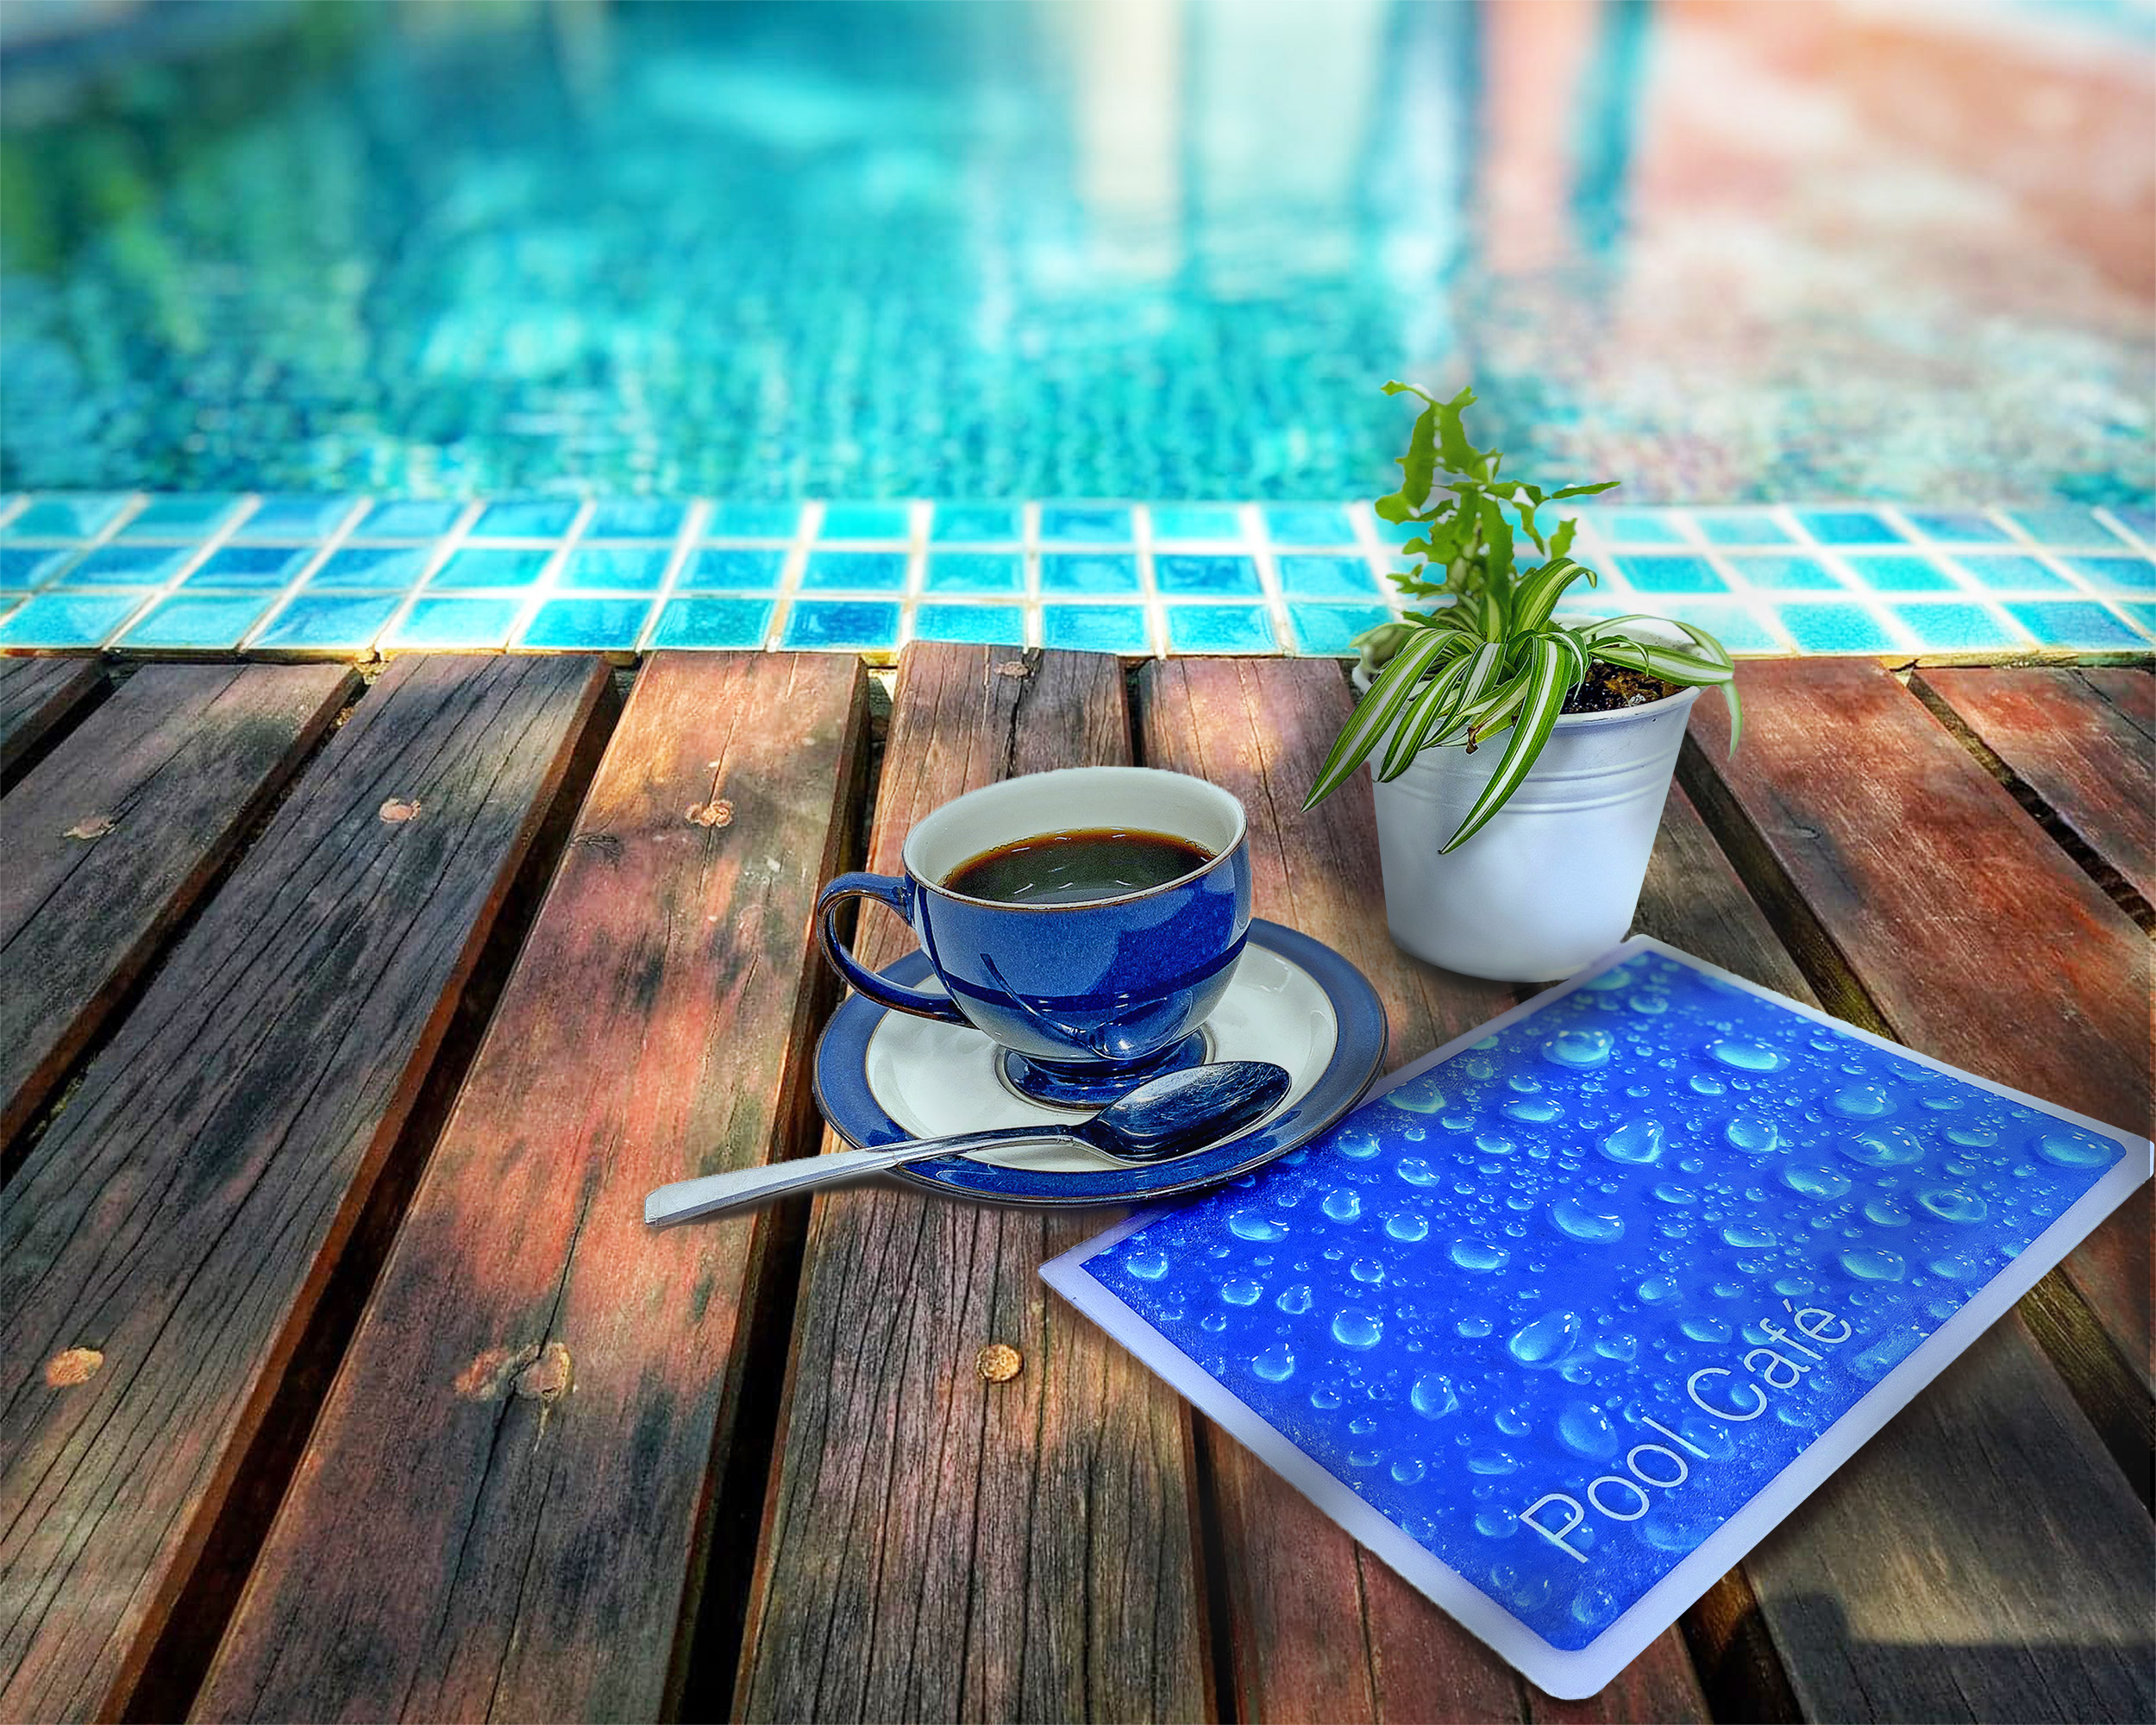 Pool menu and coffee